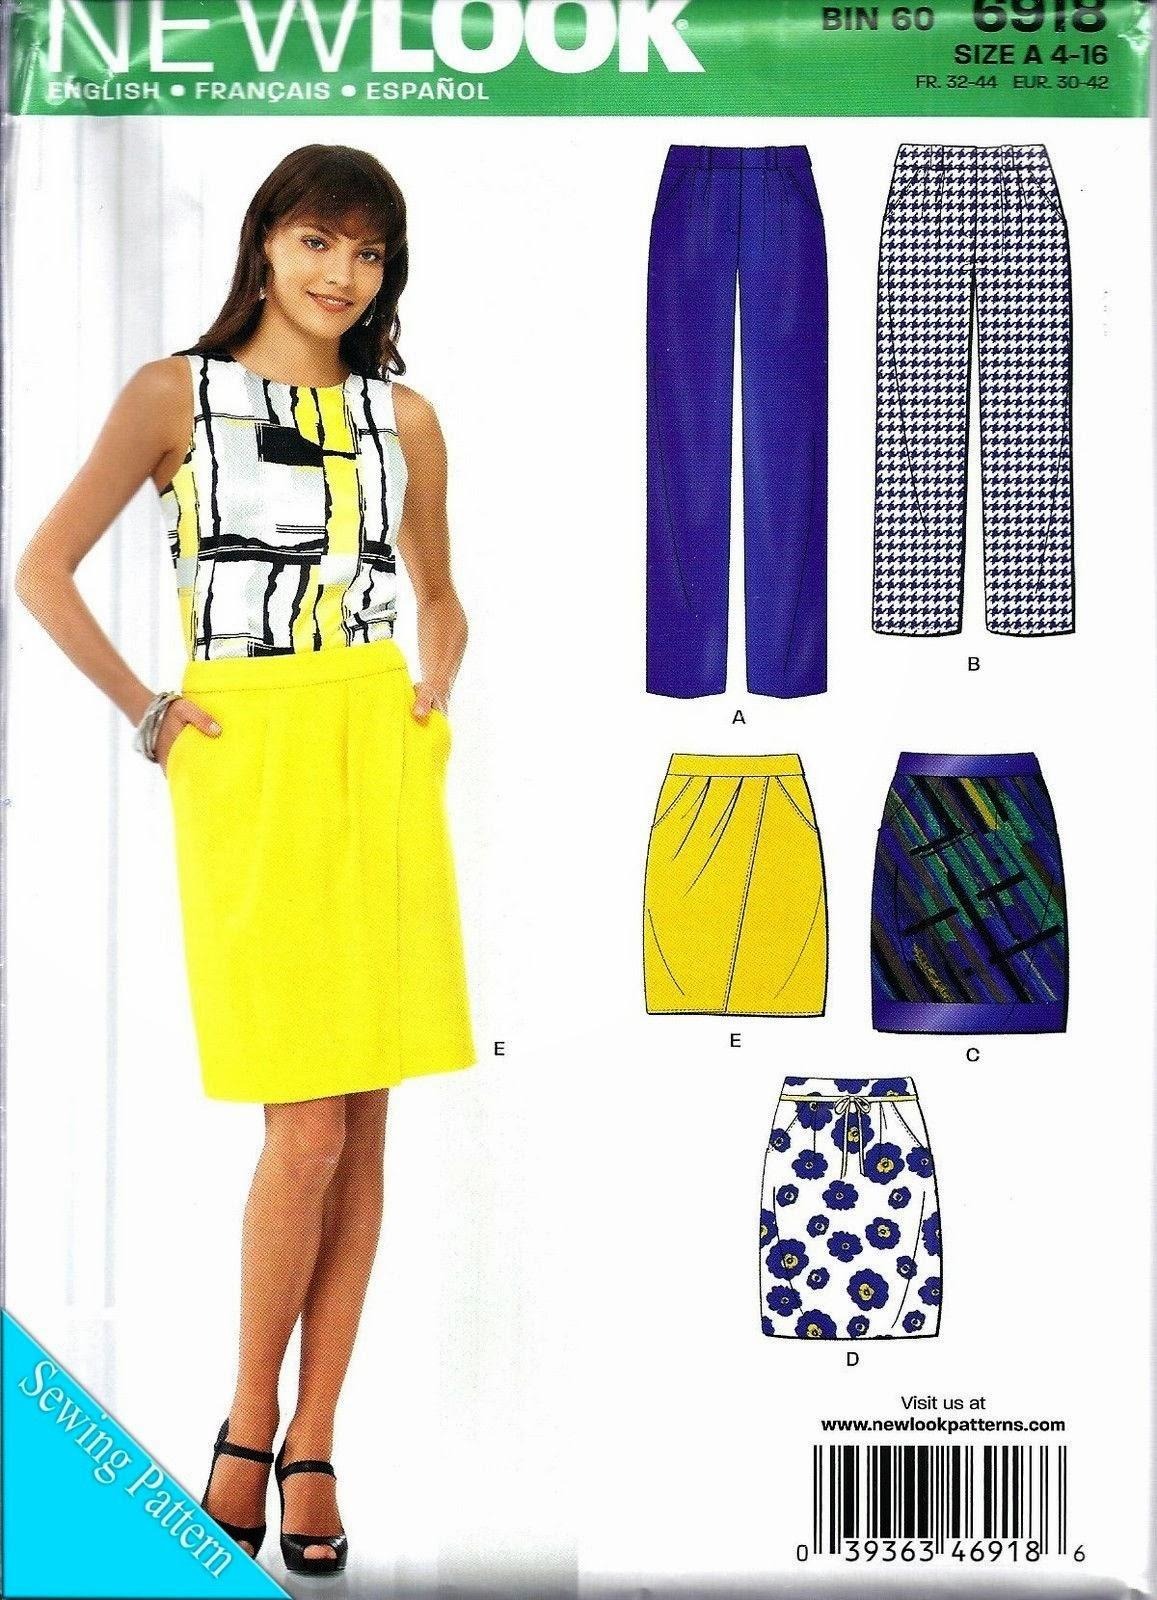 http://www.ebay.com/itm/New-Look-6918-Misses-skirts-pants-UC-FF-Pattern-sz4-16-/131040699959?pt=LH_DefaultDomain_0&hash=item1e82a26637